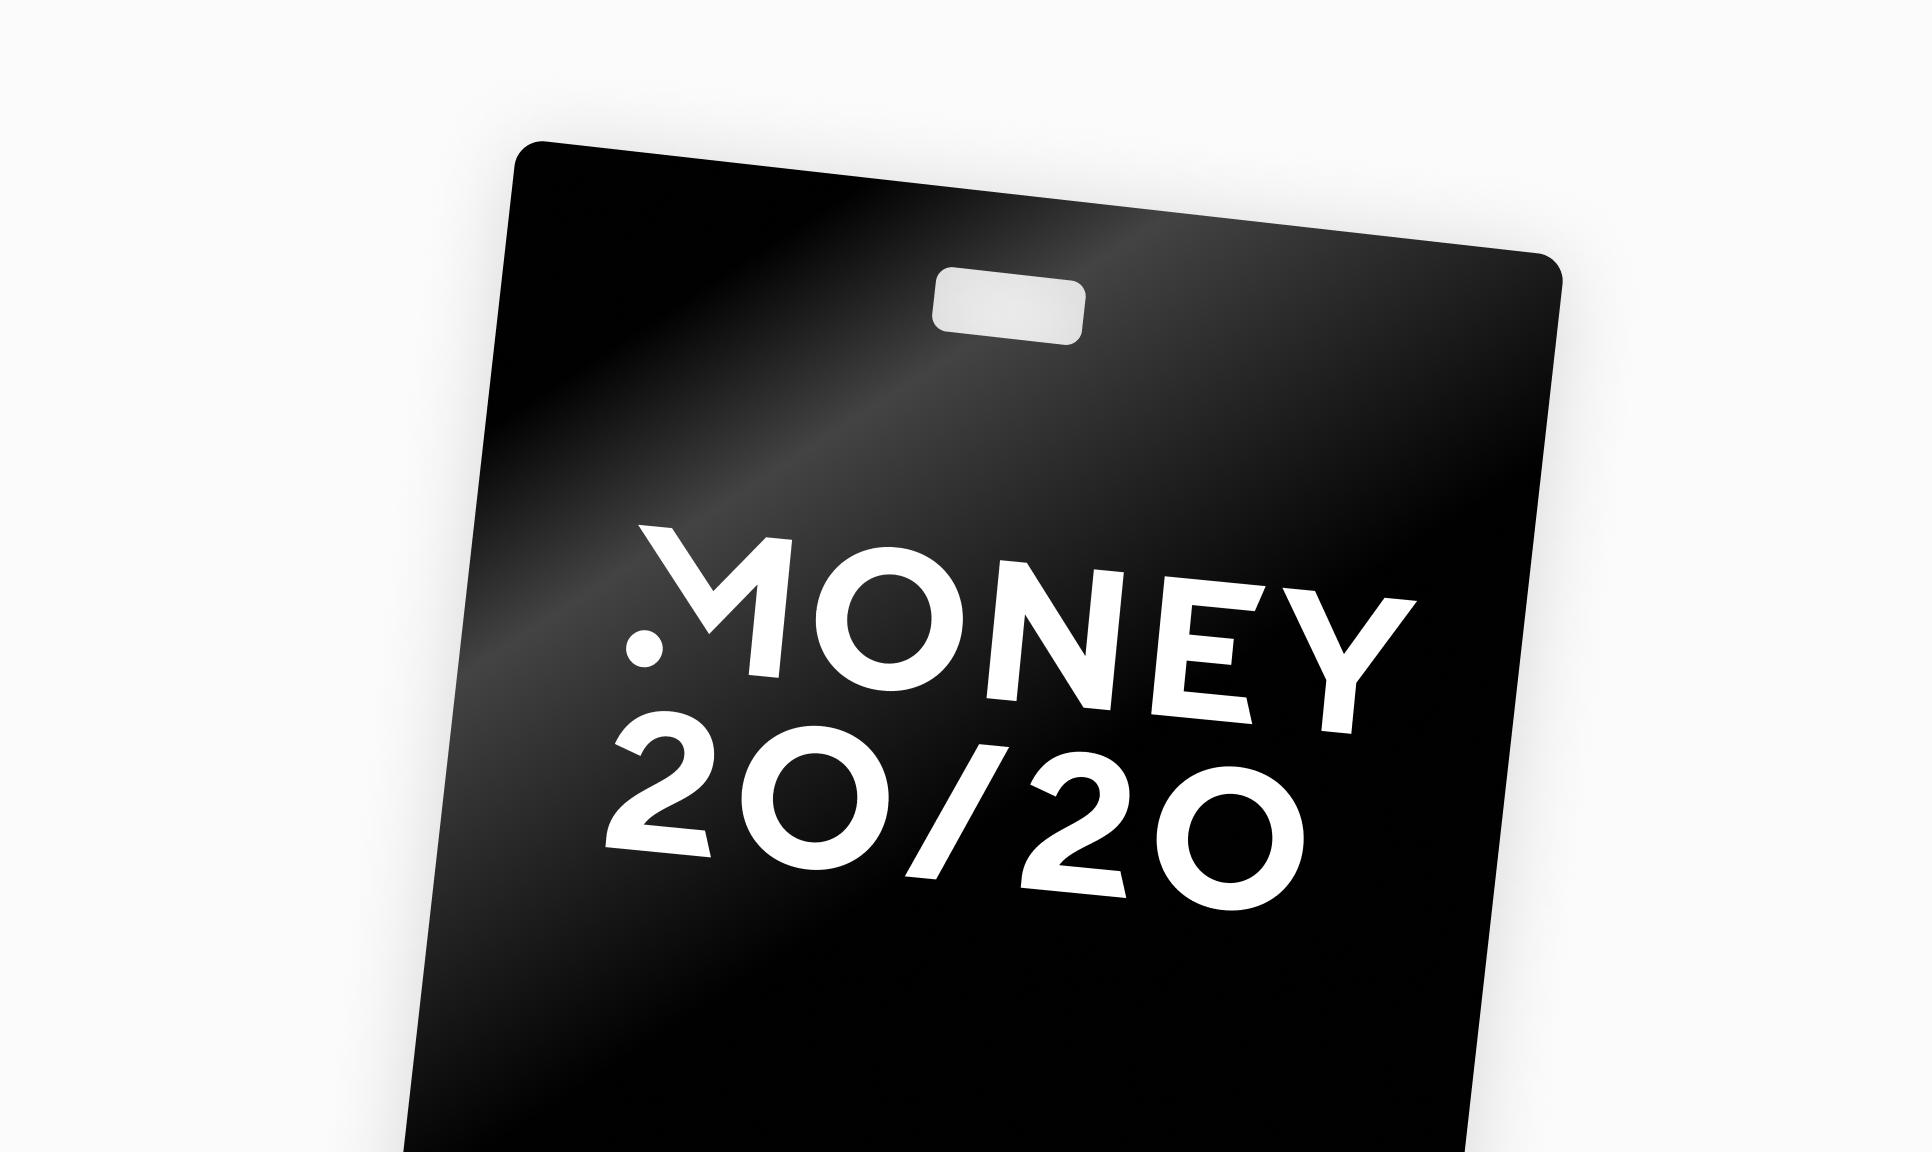 Image of a Money 20/20 event badge.